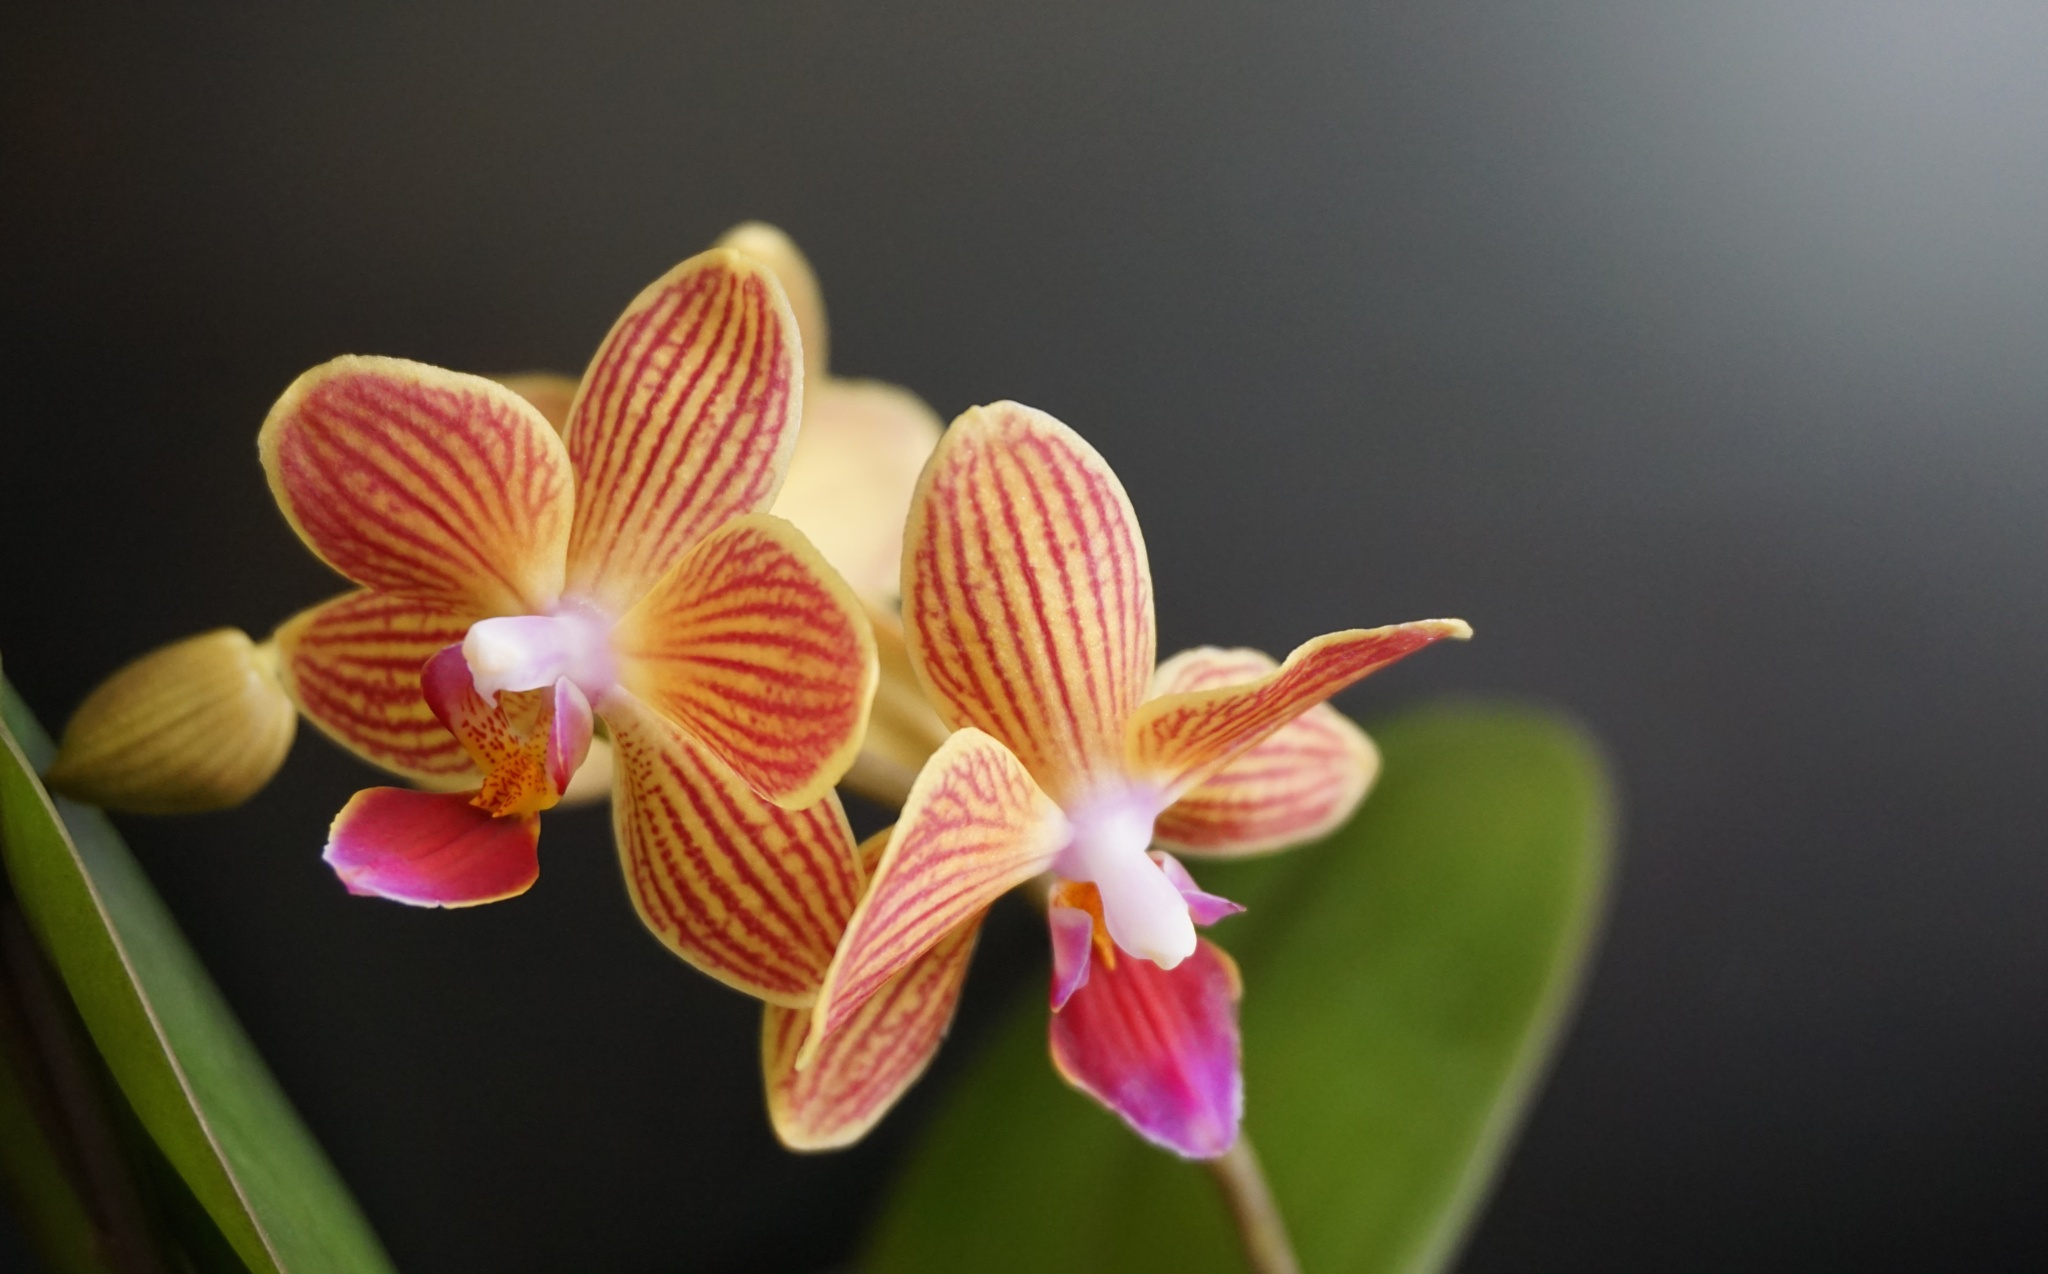 Striped Orchid by Ana Victoria Larkin